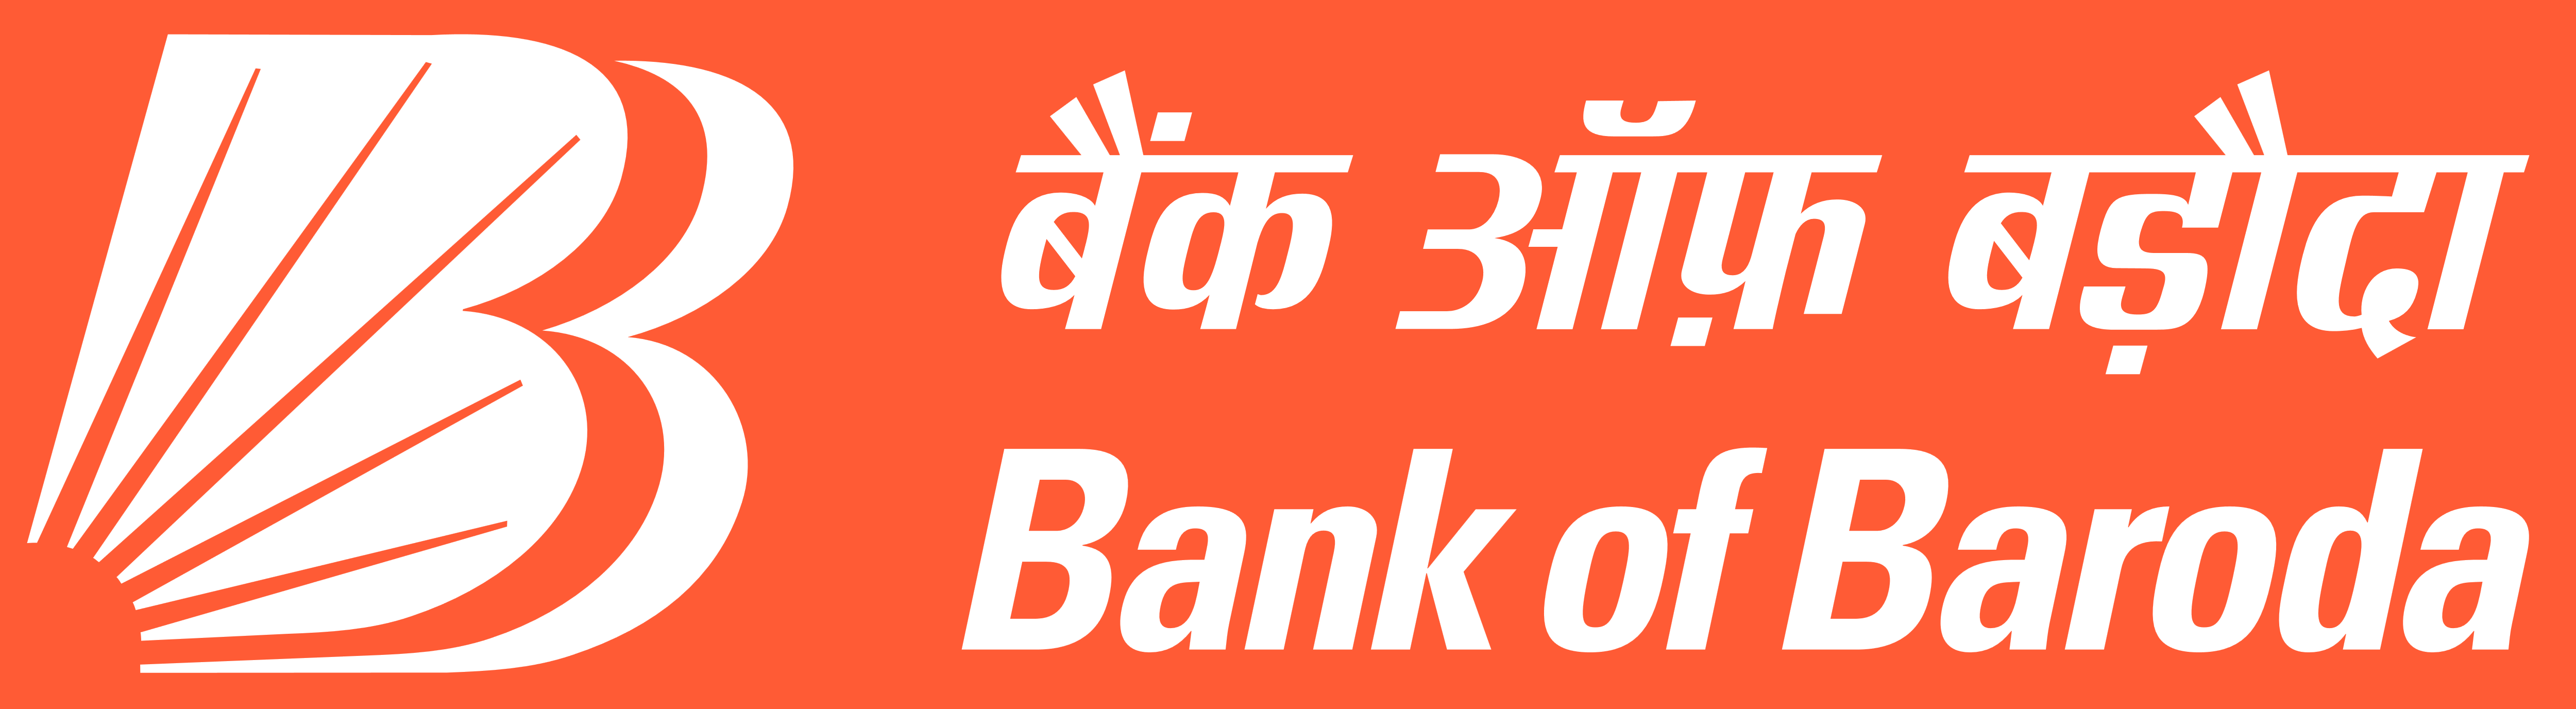 bank of baroda logos download